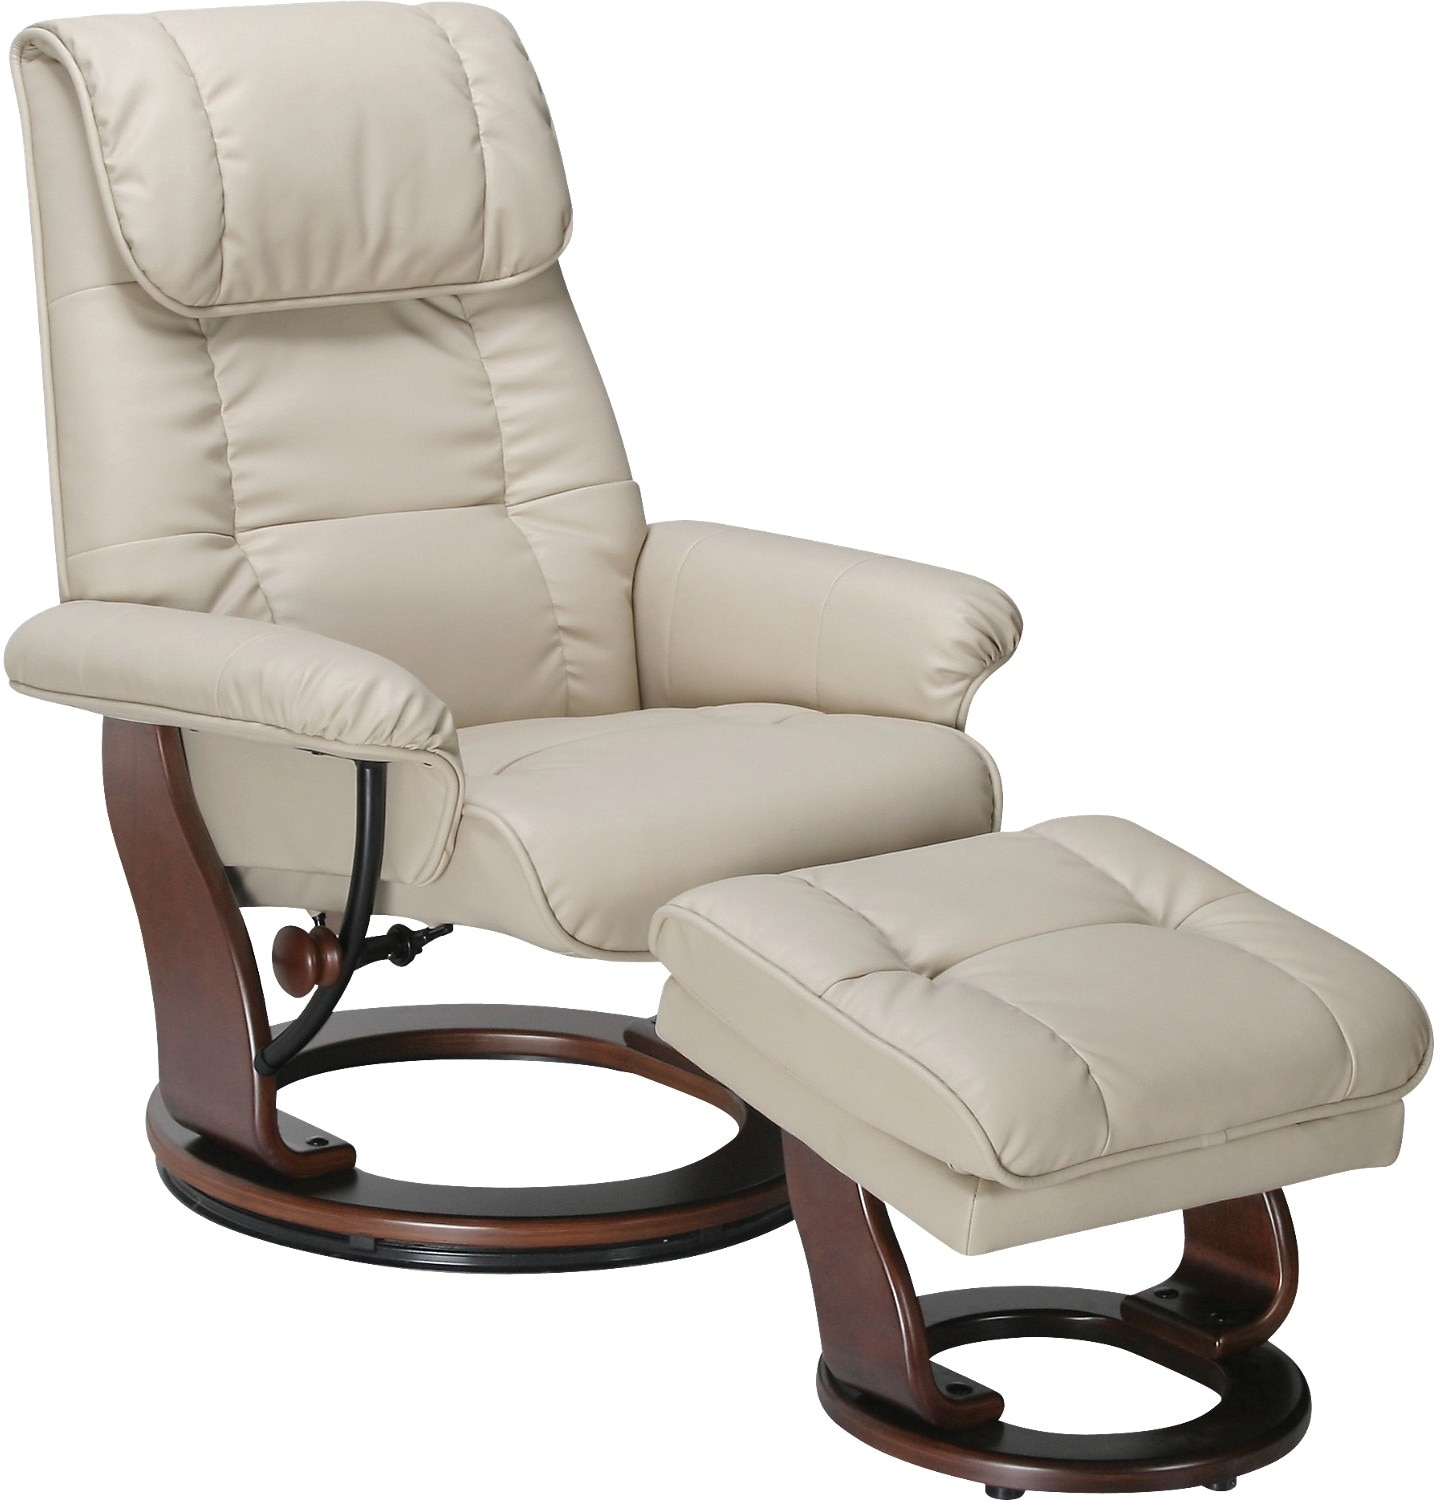 Reclining Chair And Ottoman Dixon Taupe Reclining Chair And Ottoman The Brick